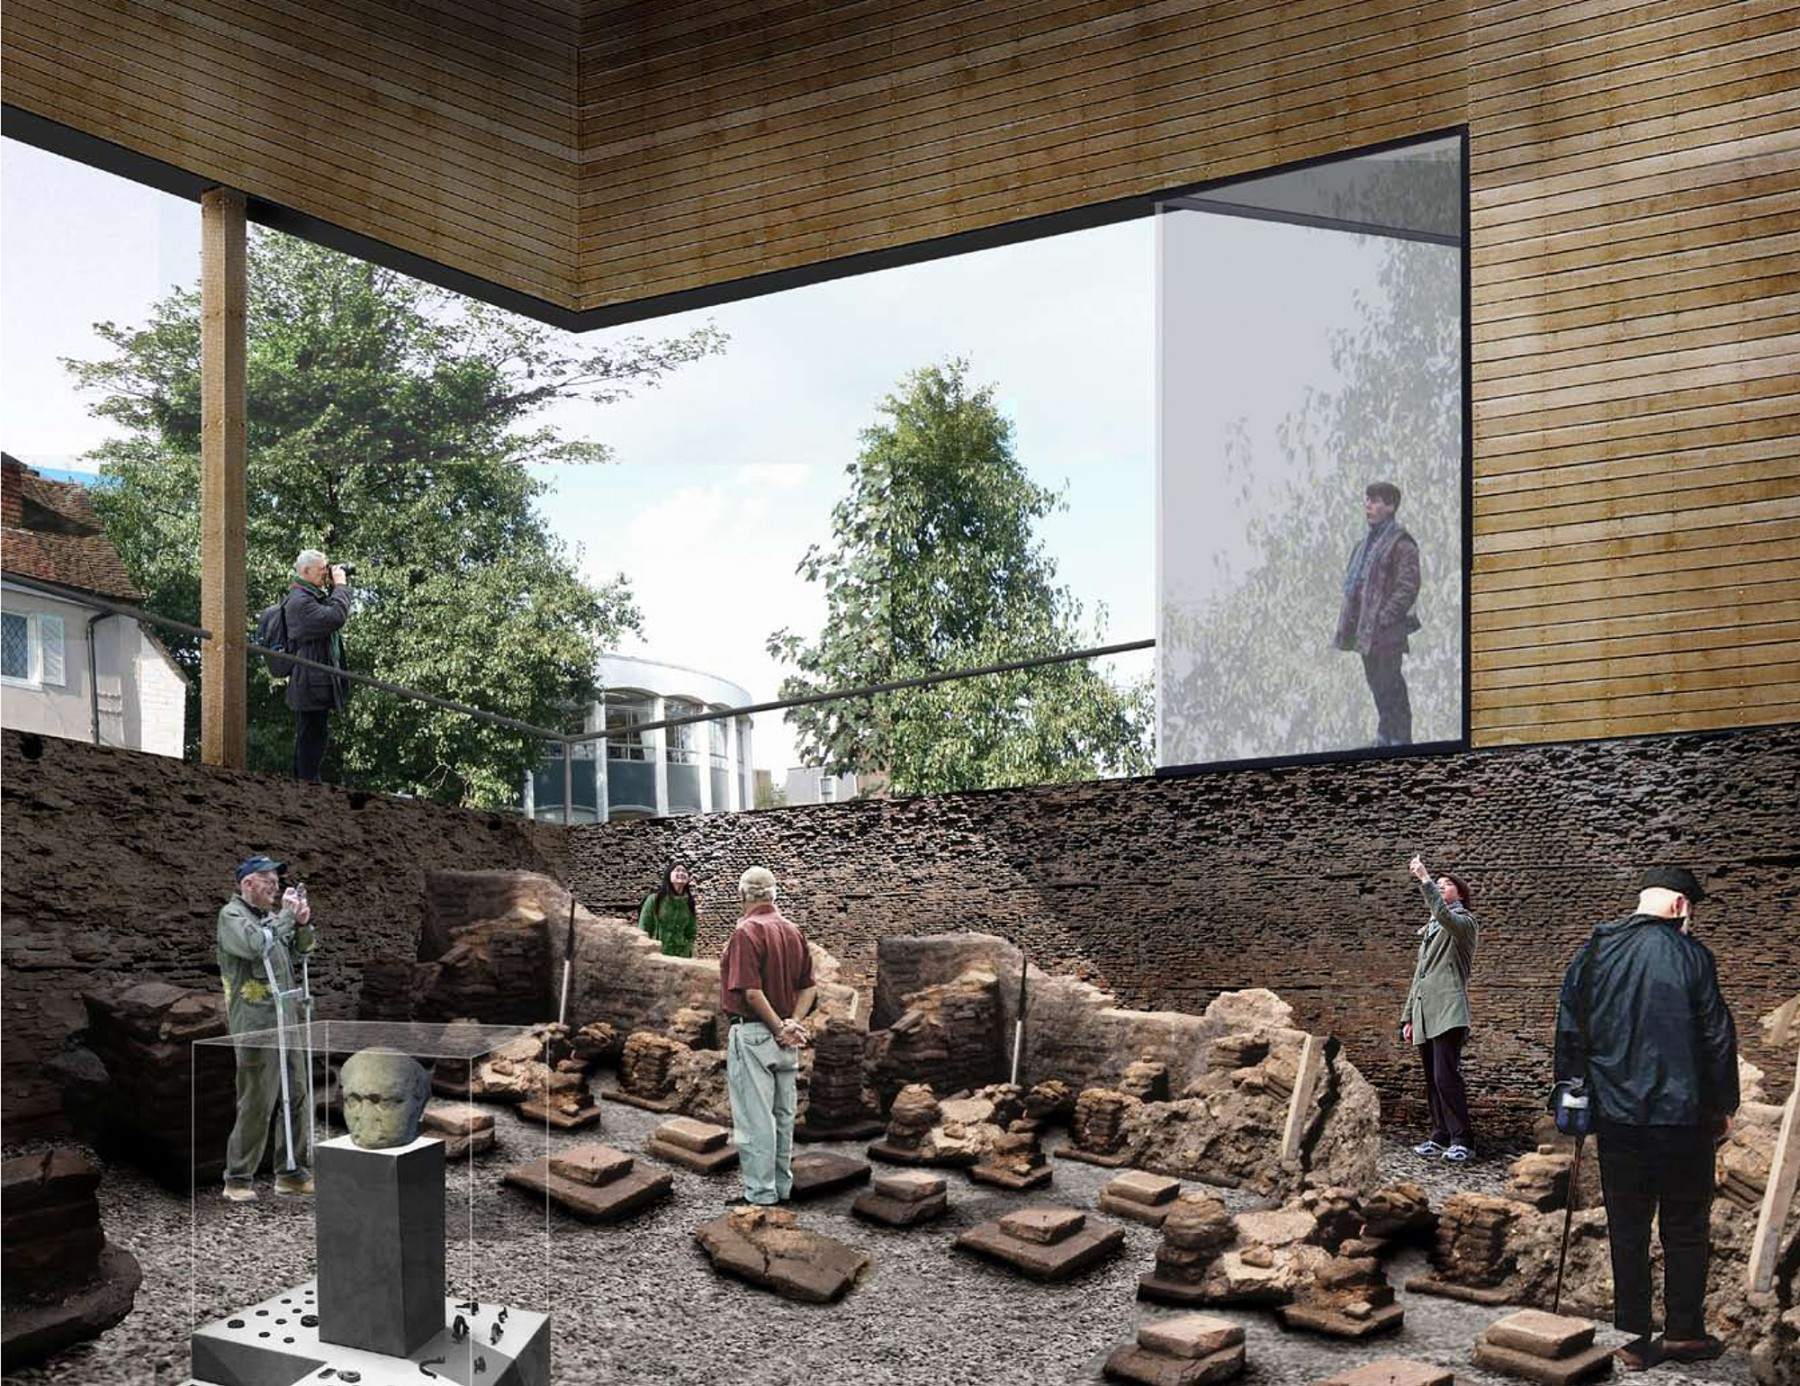 Chichester-district-museum-west-sussex-Roman-baths-competition-RIBA-Short-list-Jamie-Fobert-architects-4